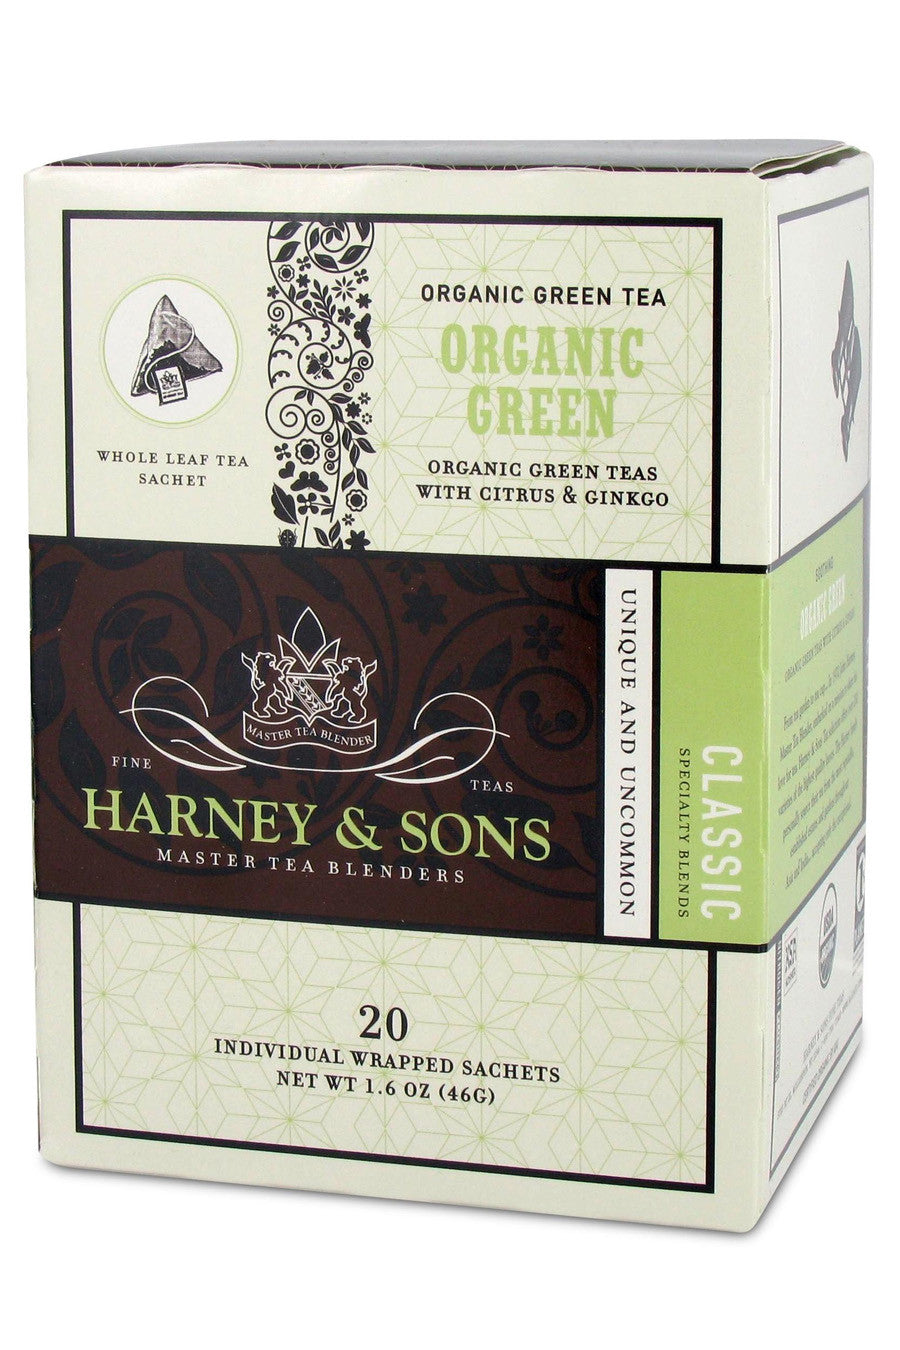 Harney & Sons Organic Green Tea with Citrus and Gingko 20ct